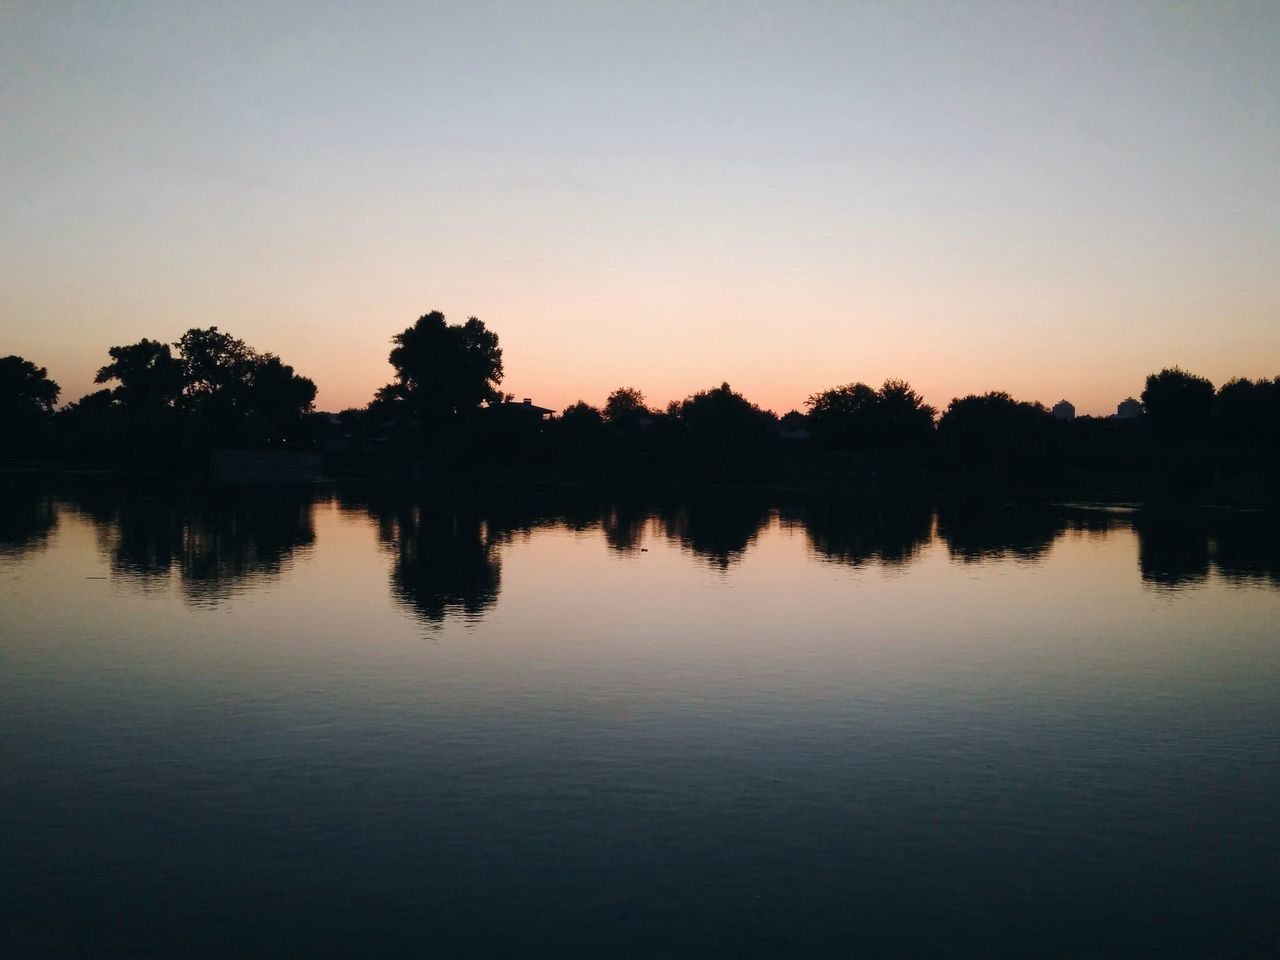 reflection, silhouette, sunset, water, tree, nature, tranquil scene, lake, scenics, beauty in nature, tranquility, waterfront, sky, dusk, outdoors, no people, clear sky